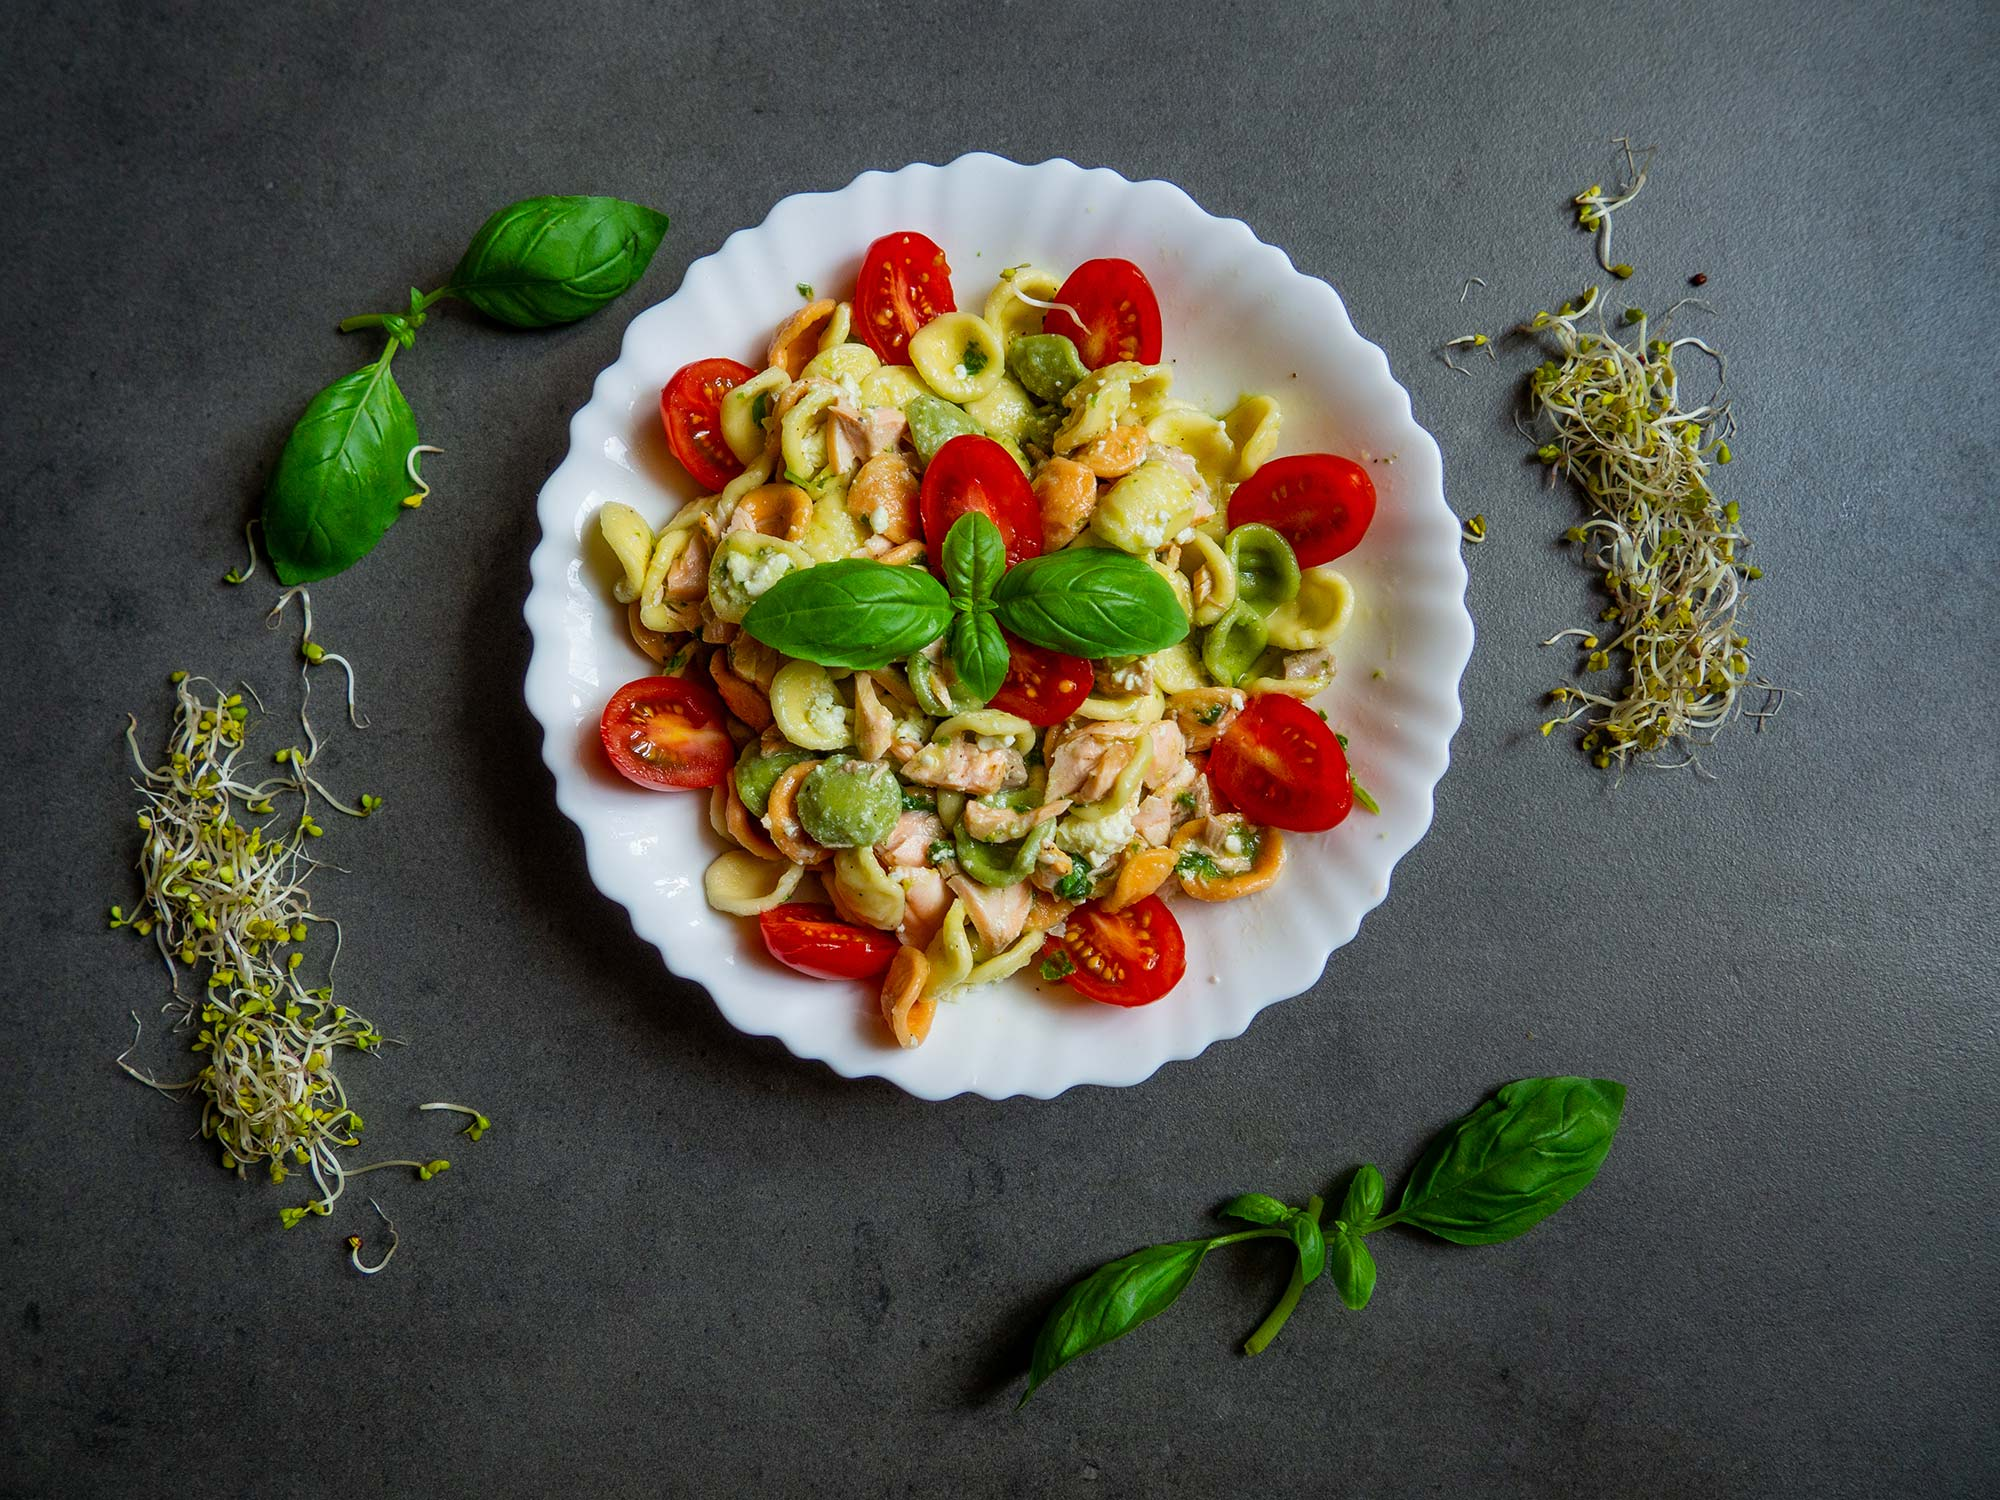 Lunch #6 – Pasta with basil pesto and salmon